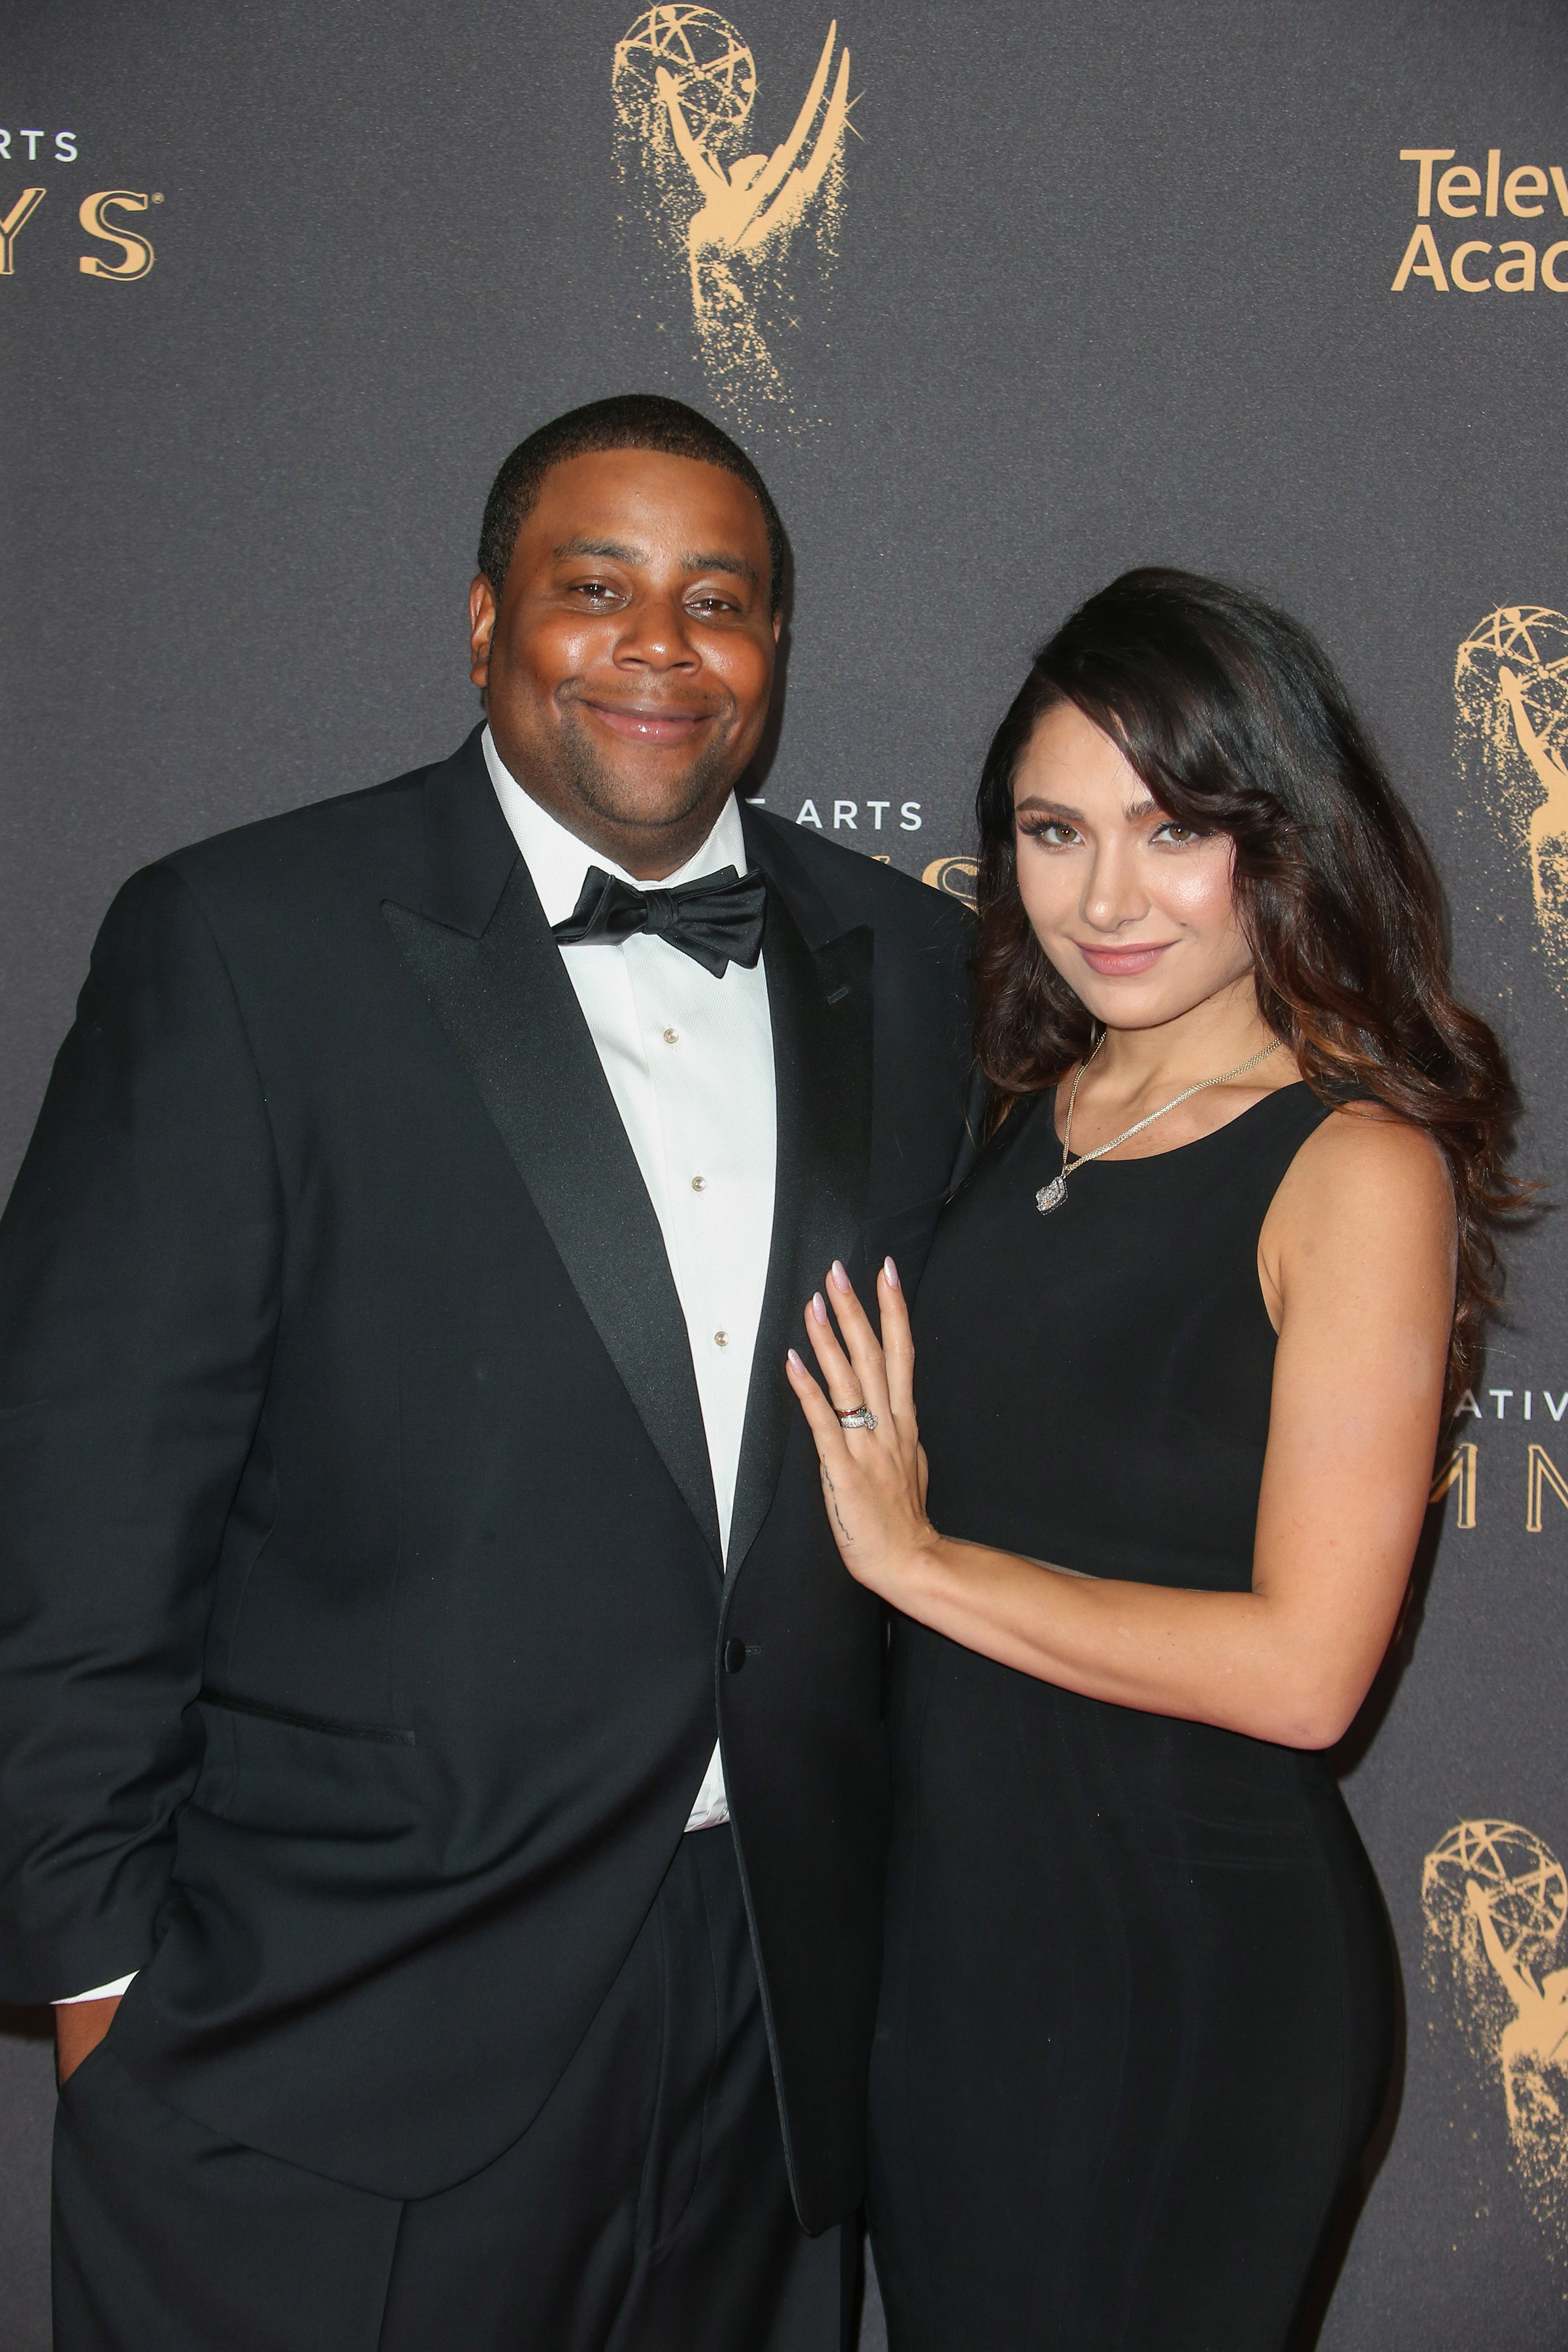 Kenan Thompson And Wife Welcome Baby No. 2